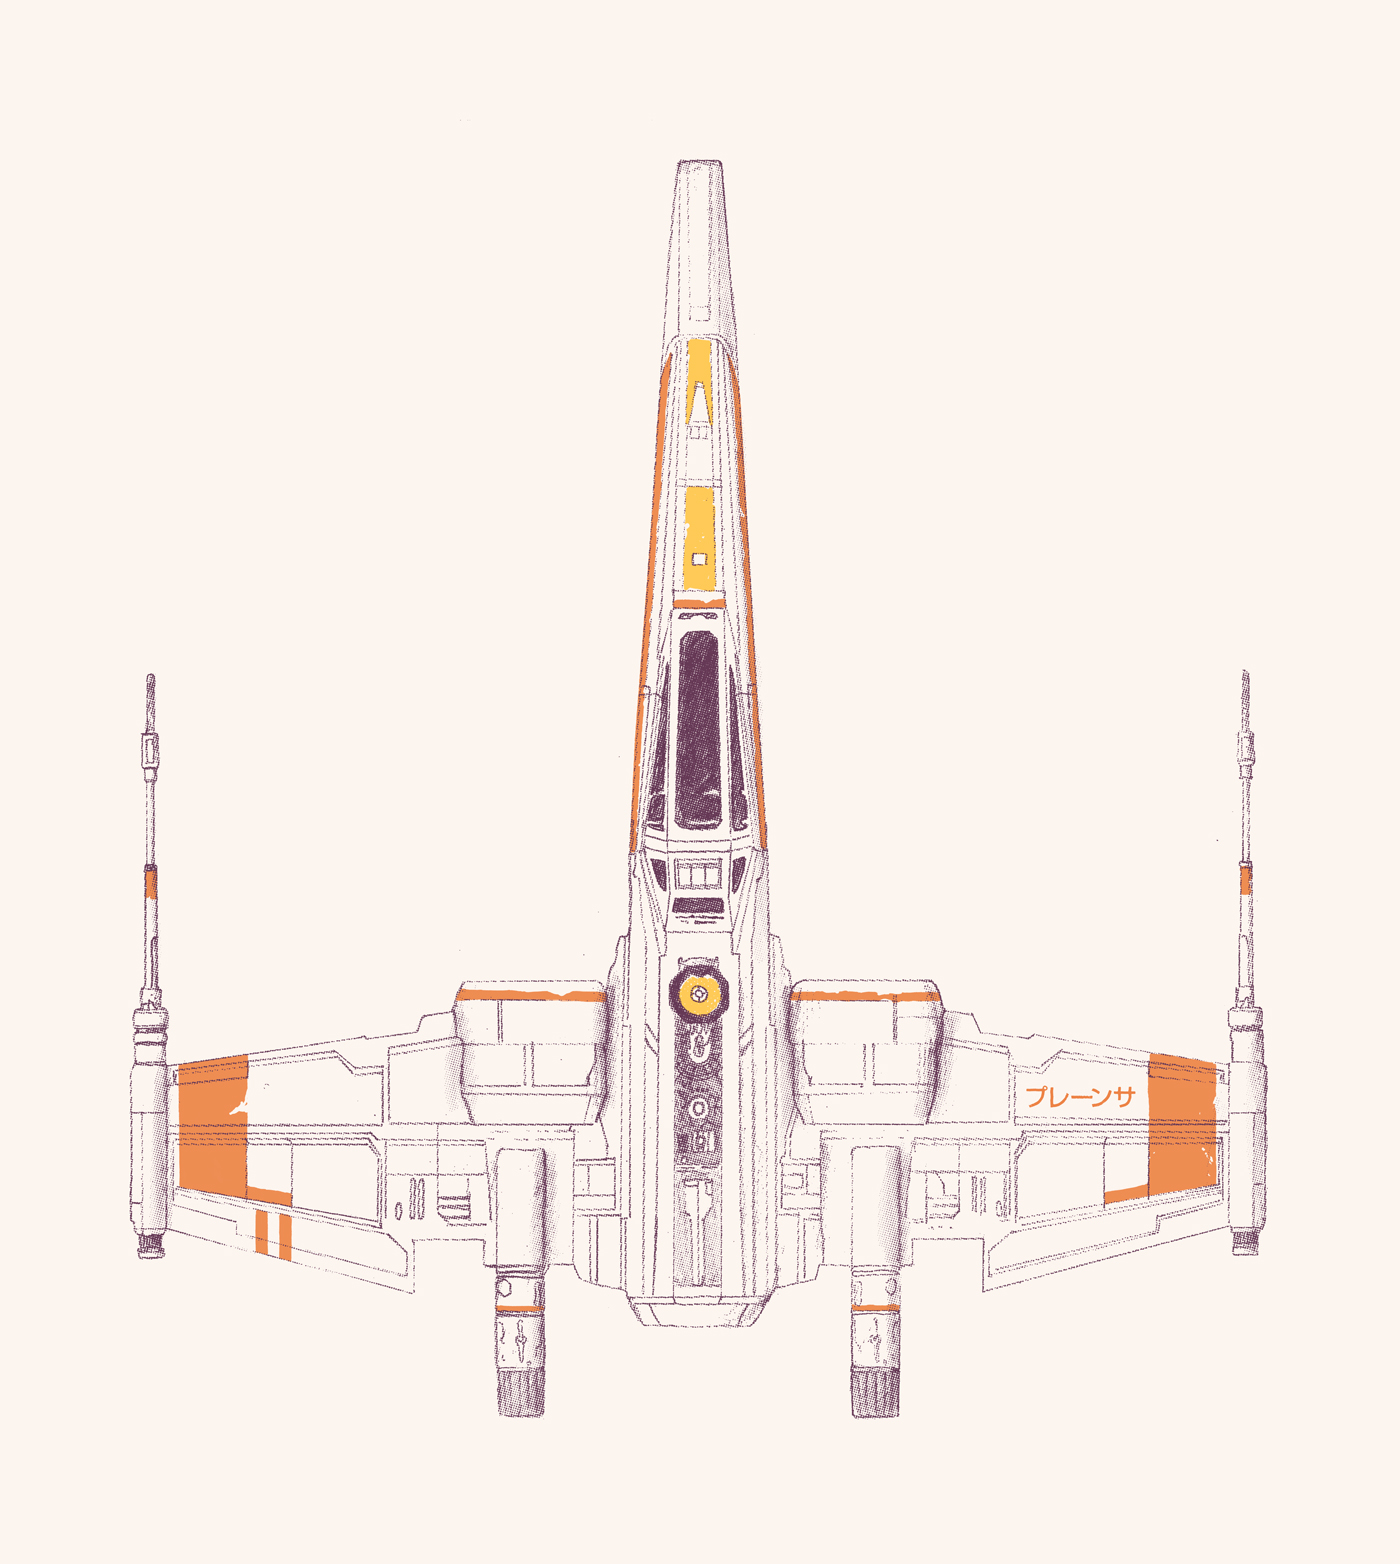 <dive><h1>X-Wing</h1>Spaceship</dive>